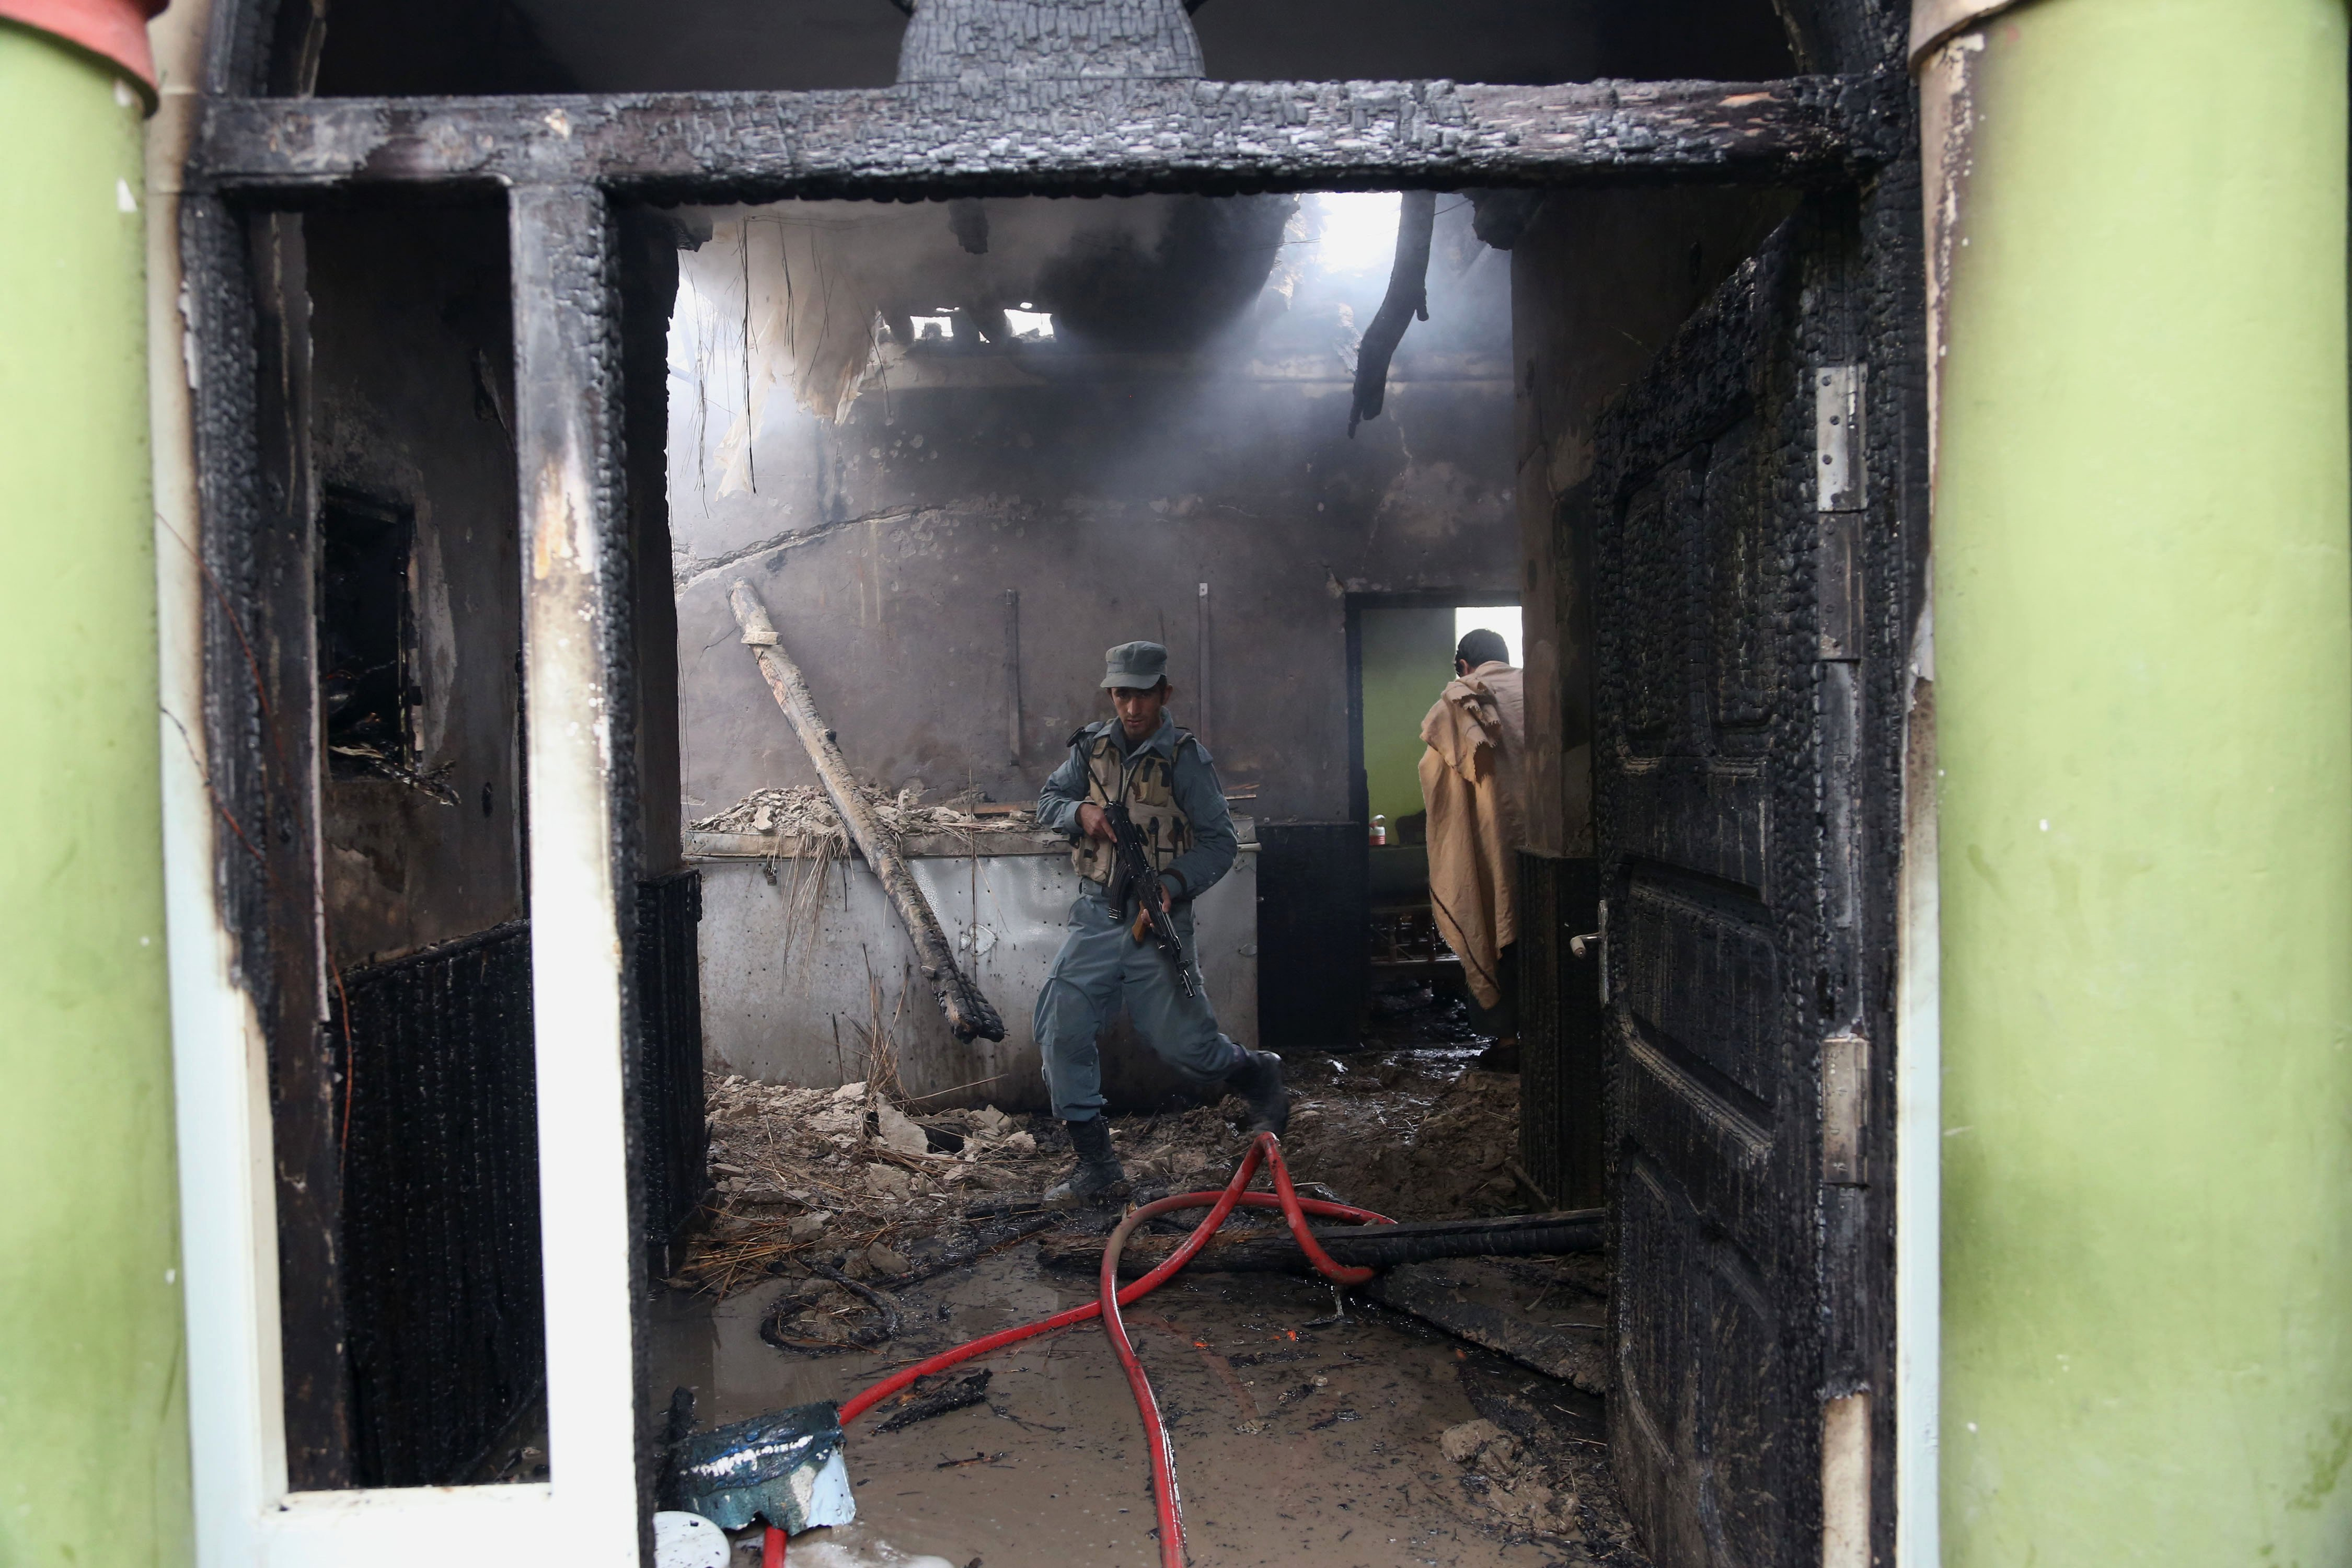 Mar. 20, 2014. An Afghan police officer walks around inside the nearby state-run Afghan radio and television building badly damaged when a suicide car bomber blew up his vehicle near a police station in Jalalabad, Afghanistan.